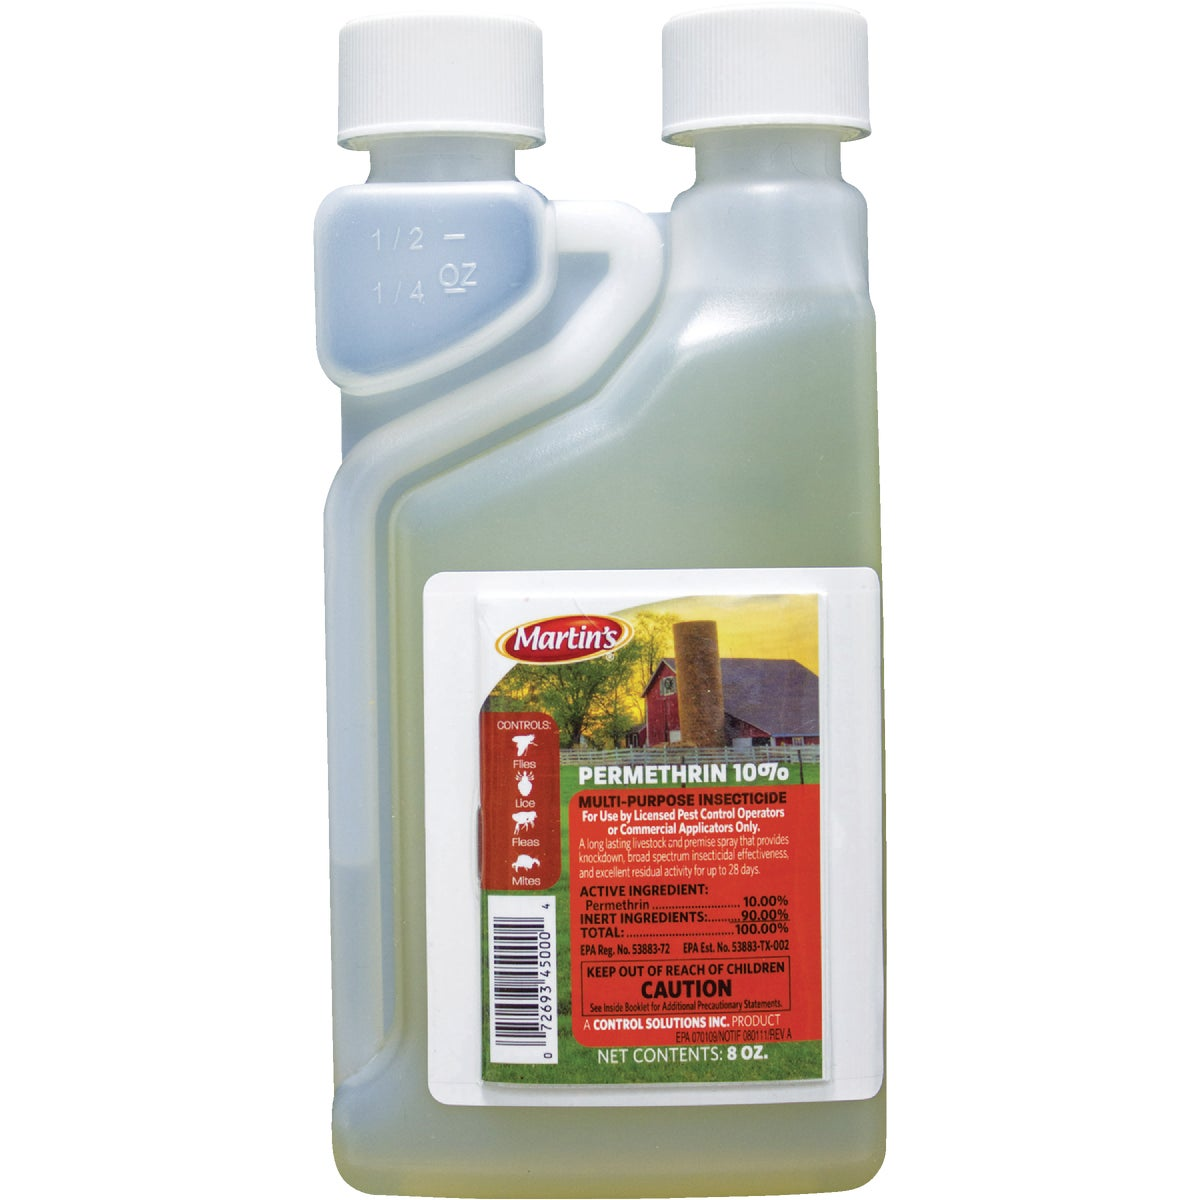 8OZ PERMETHN INSECTICIDE - 82004500 by Control Solutions